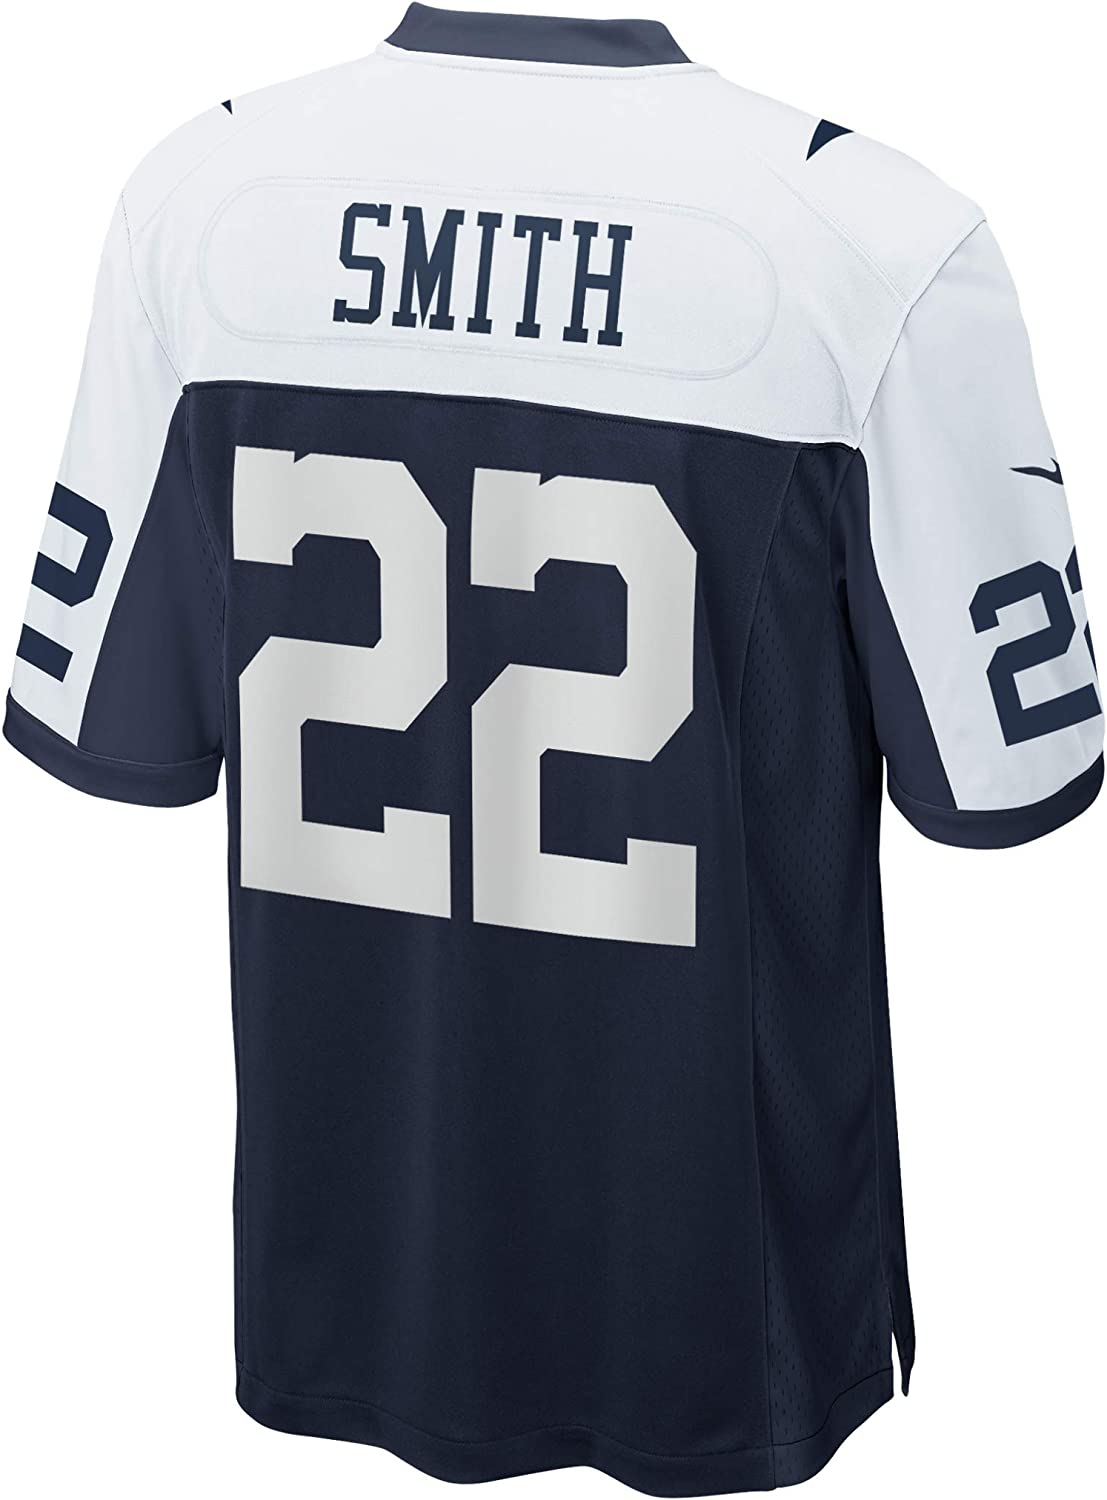 NFL Dallas Cowboys Nike Game Jersey